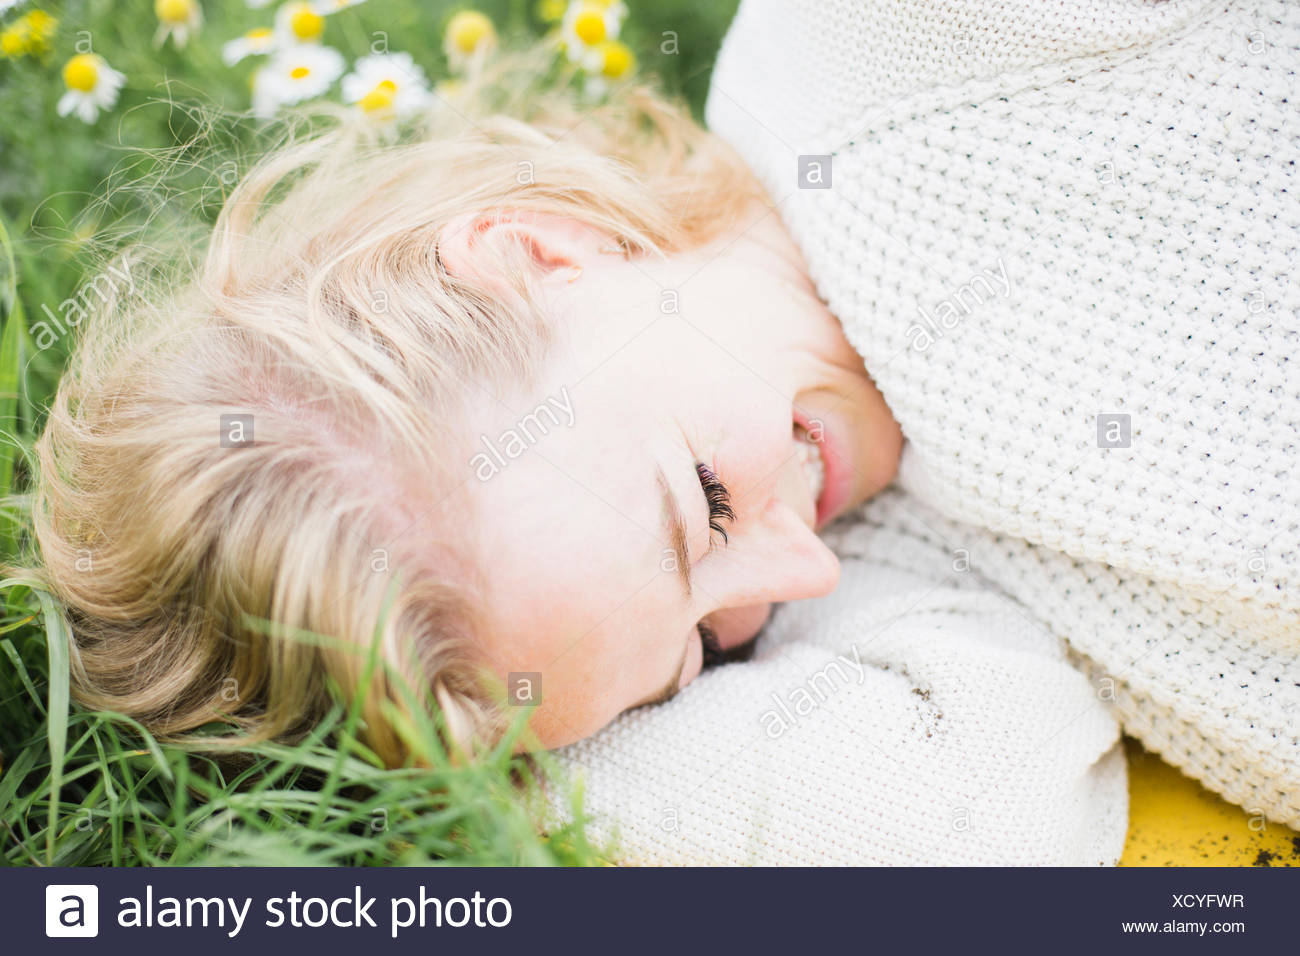 young woman smiling in nature - Stock Image